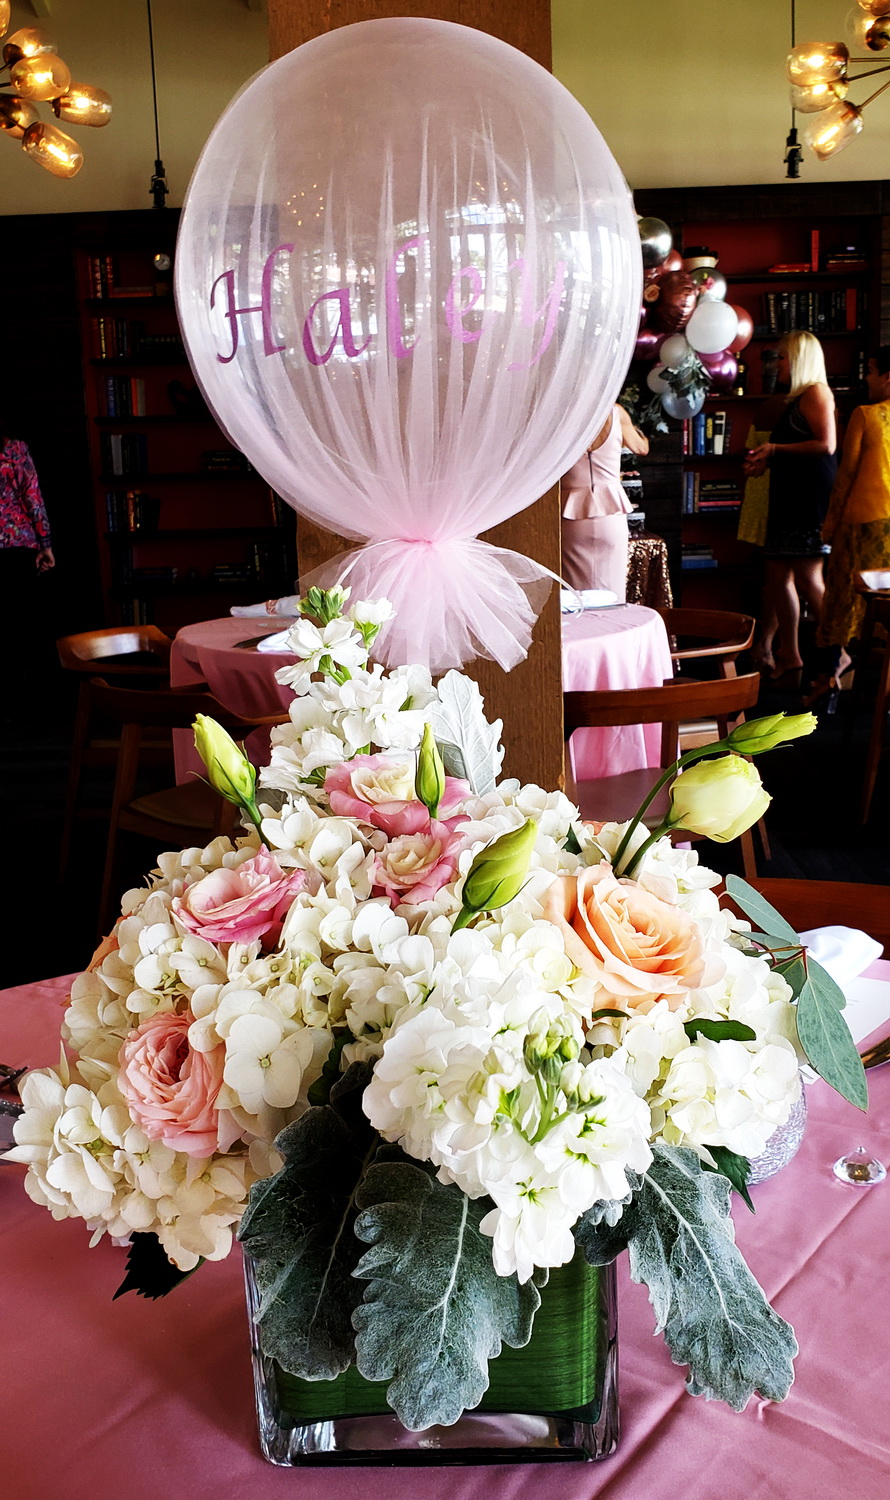 Custom balloon design and flowers